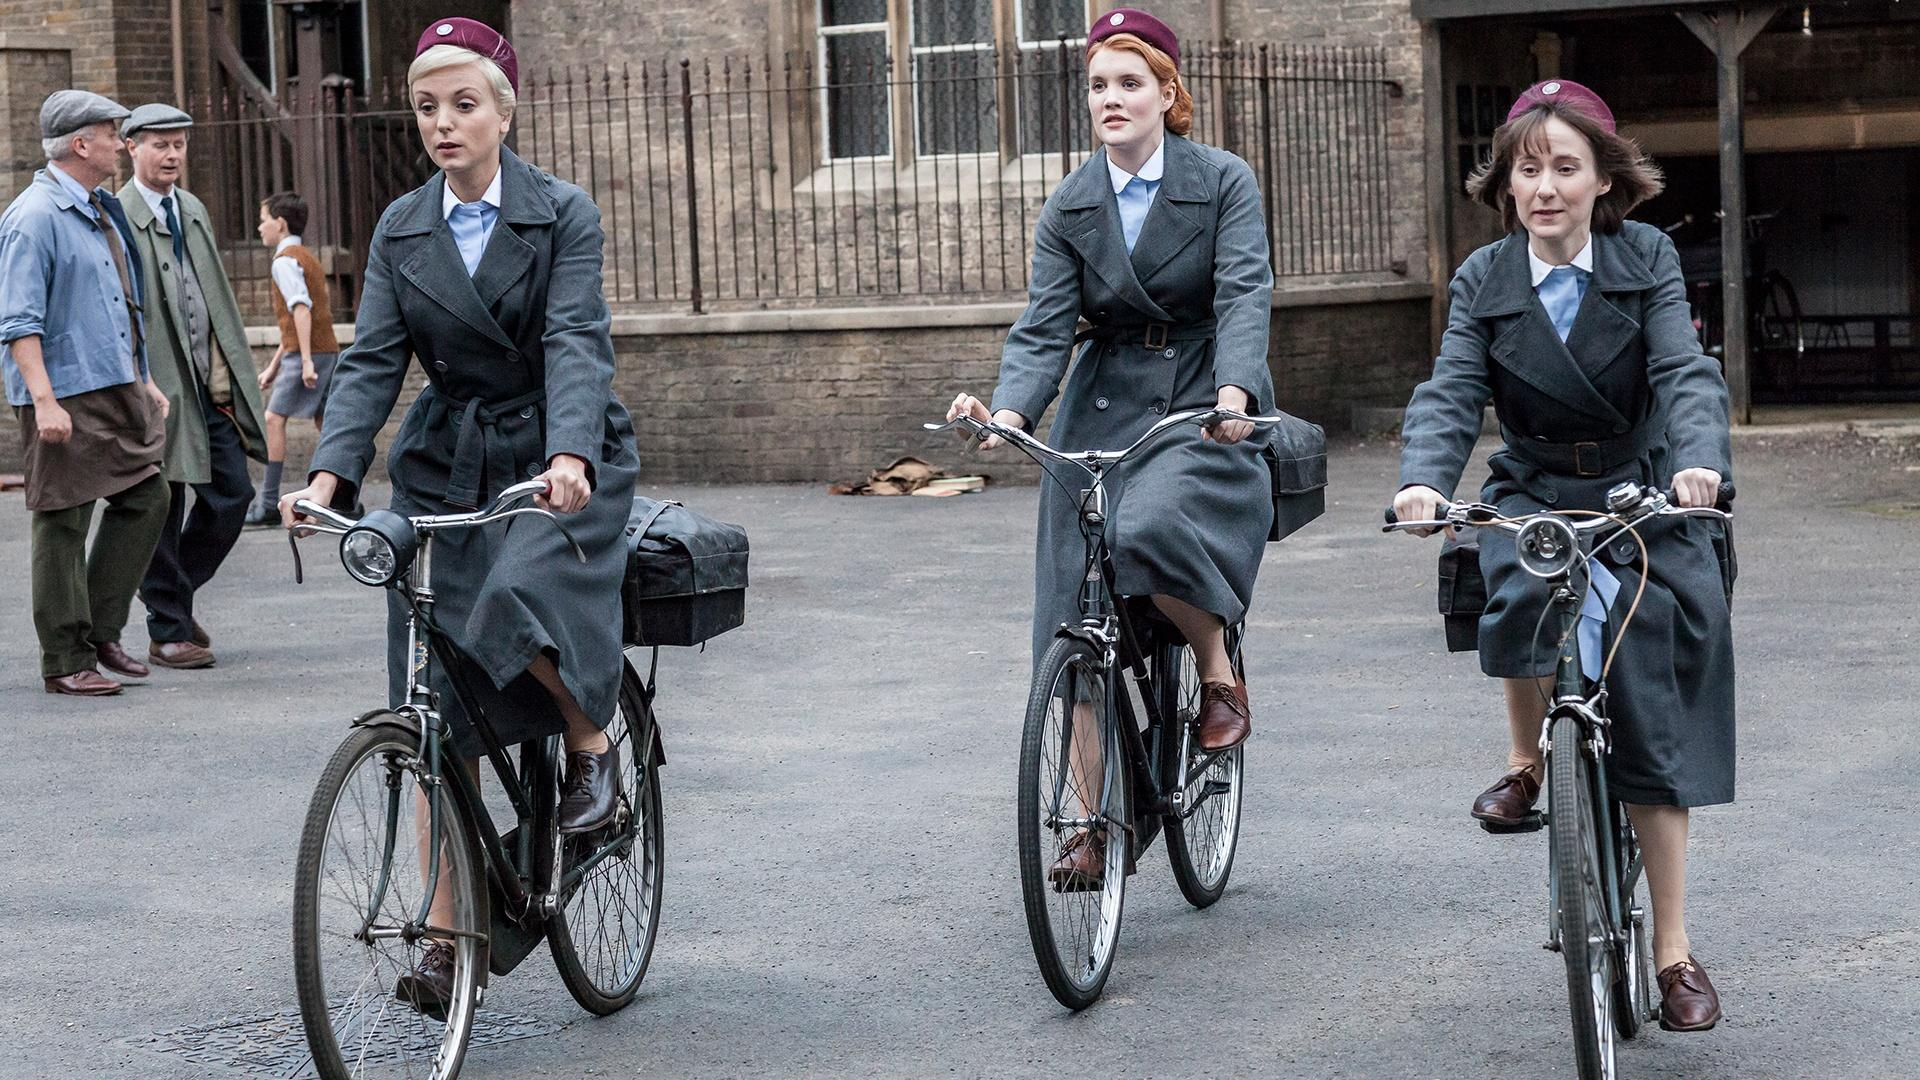 Image result for call the midwife cycling